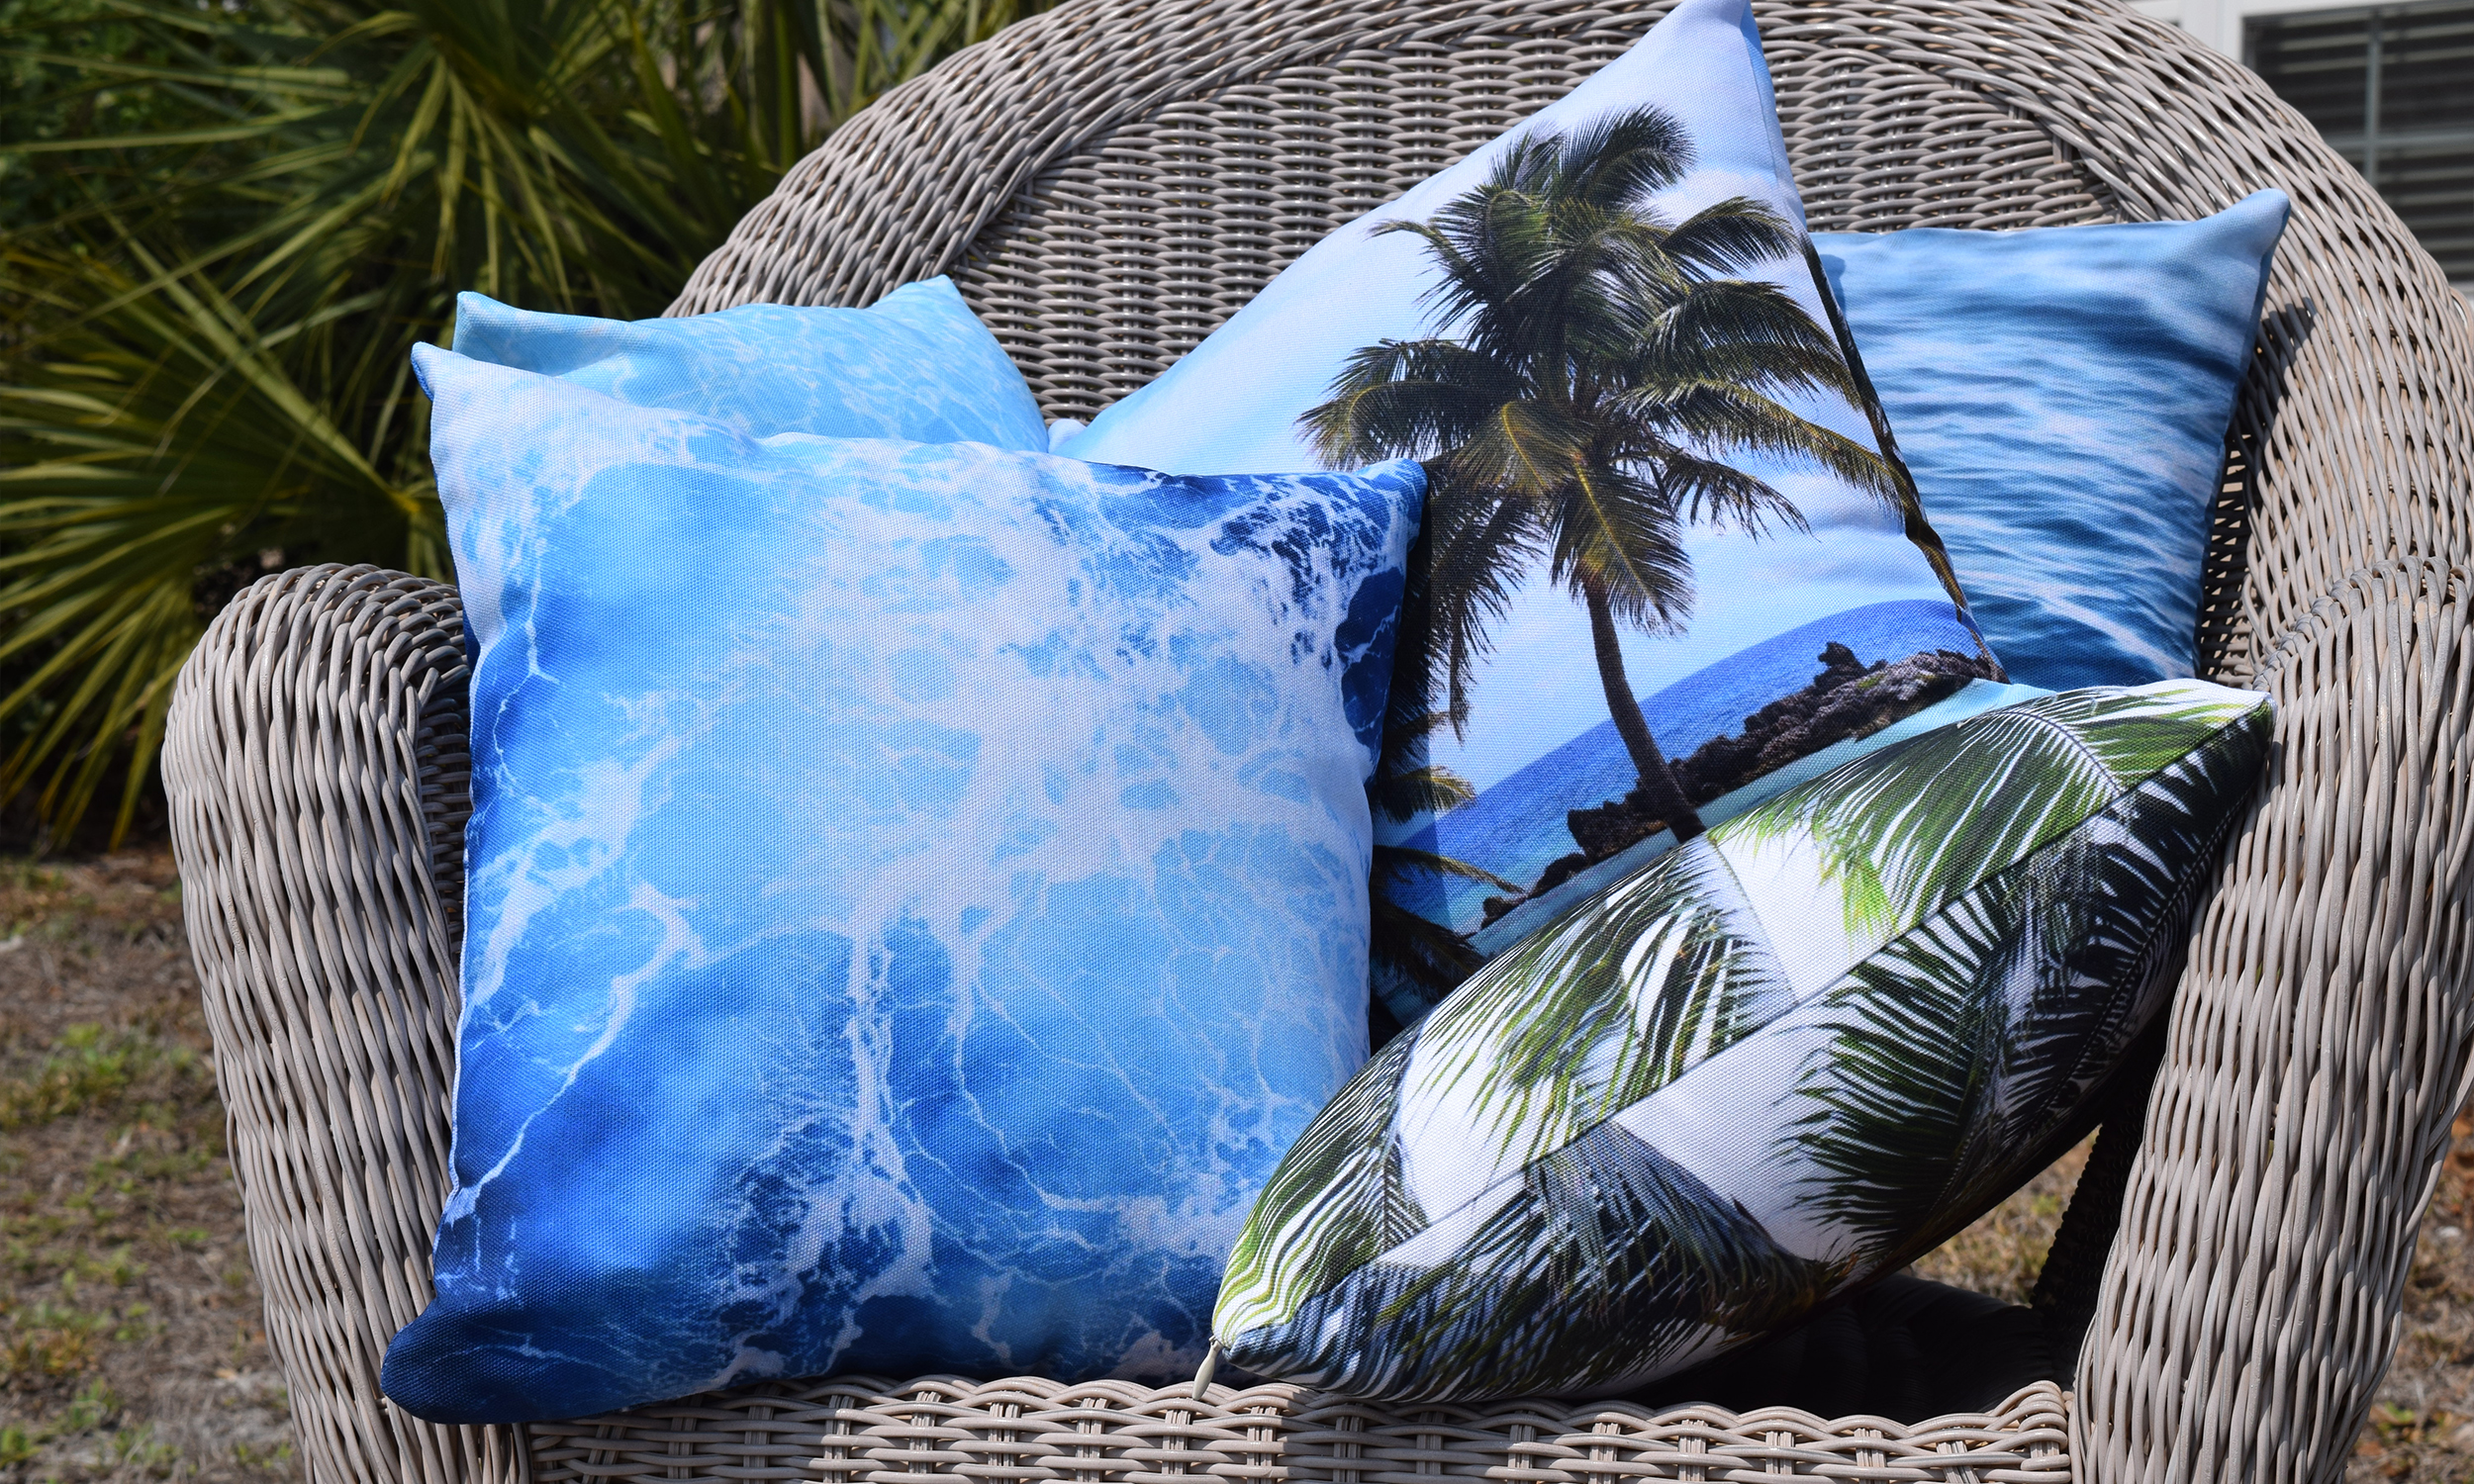 Five Throw Pillows on Chair - Nature | City Co.